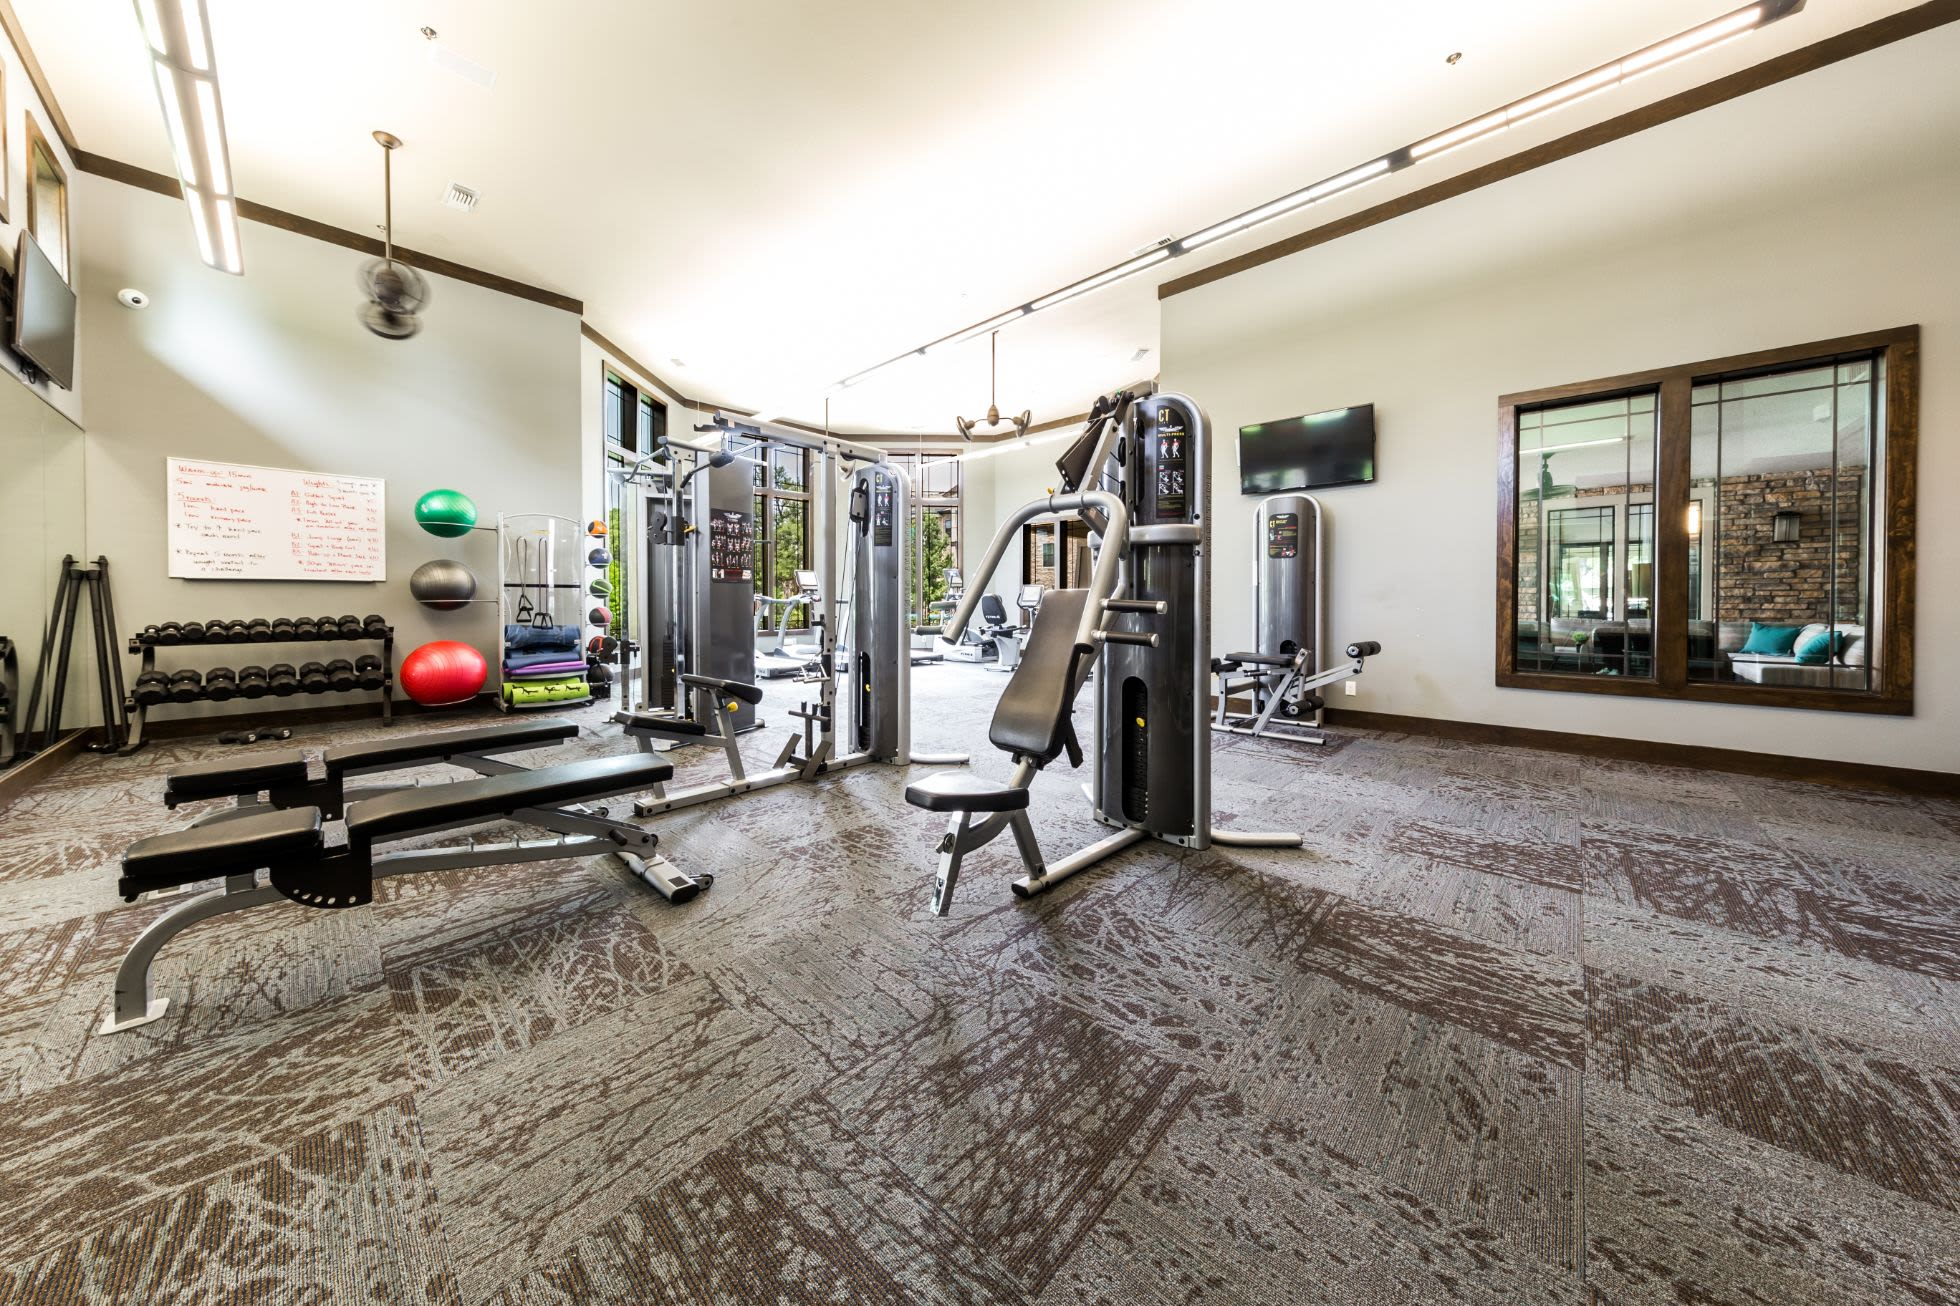 Weight machines and benches in the fitness center at Marquis on Lakeline in Cedar Park, Texas